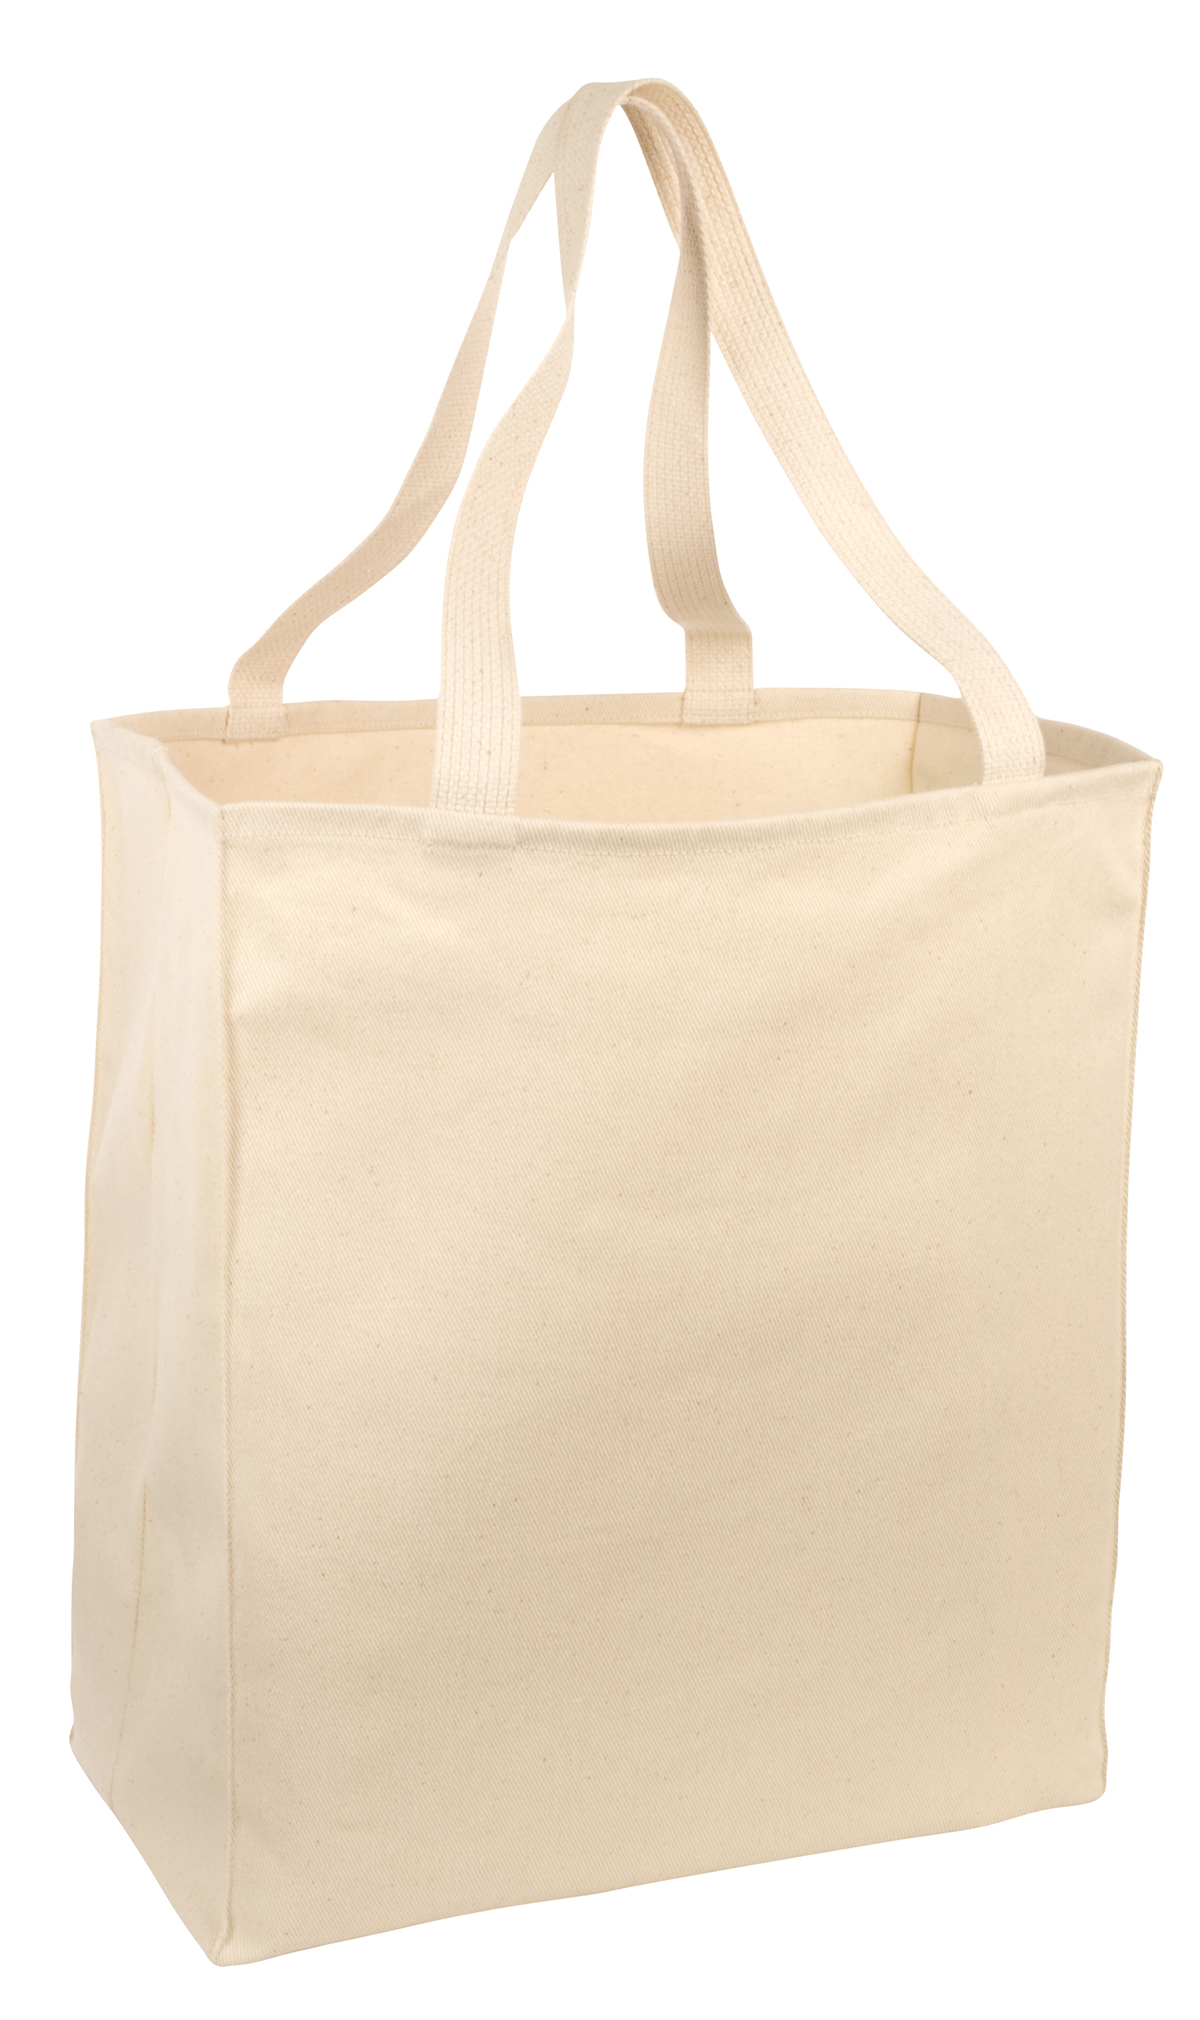 Bag clipart cotton bag. Port authority over the